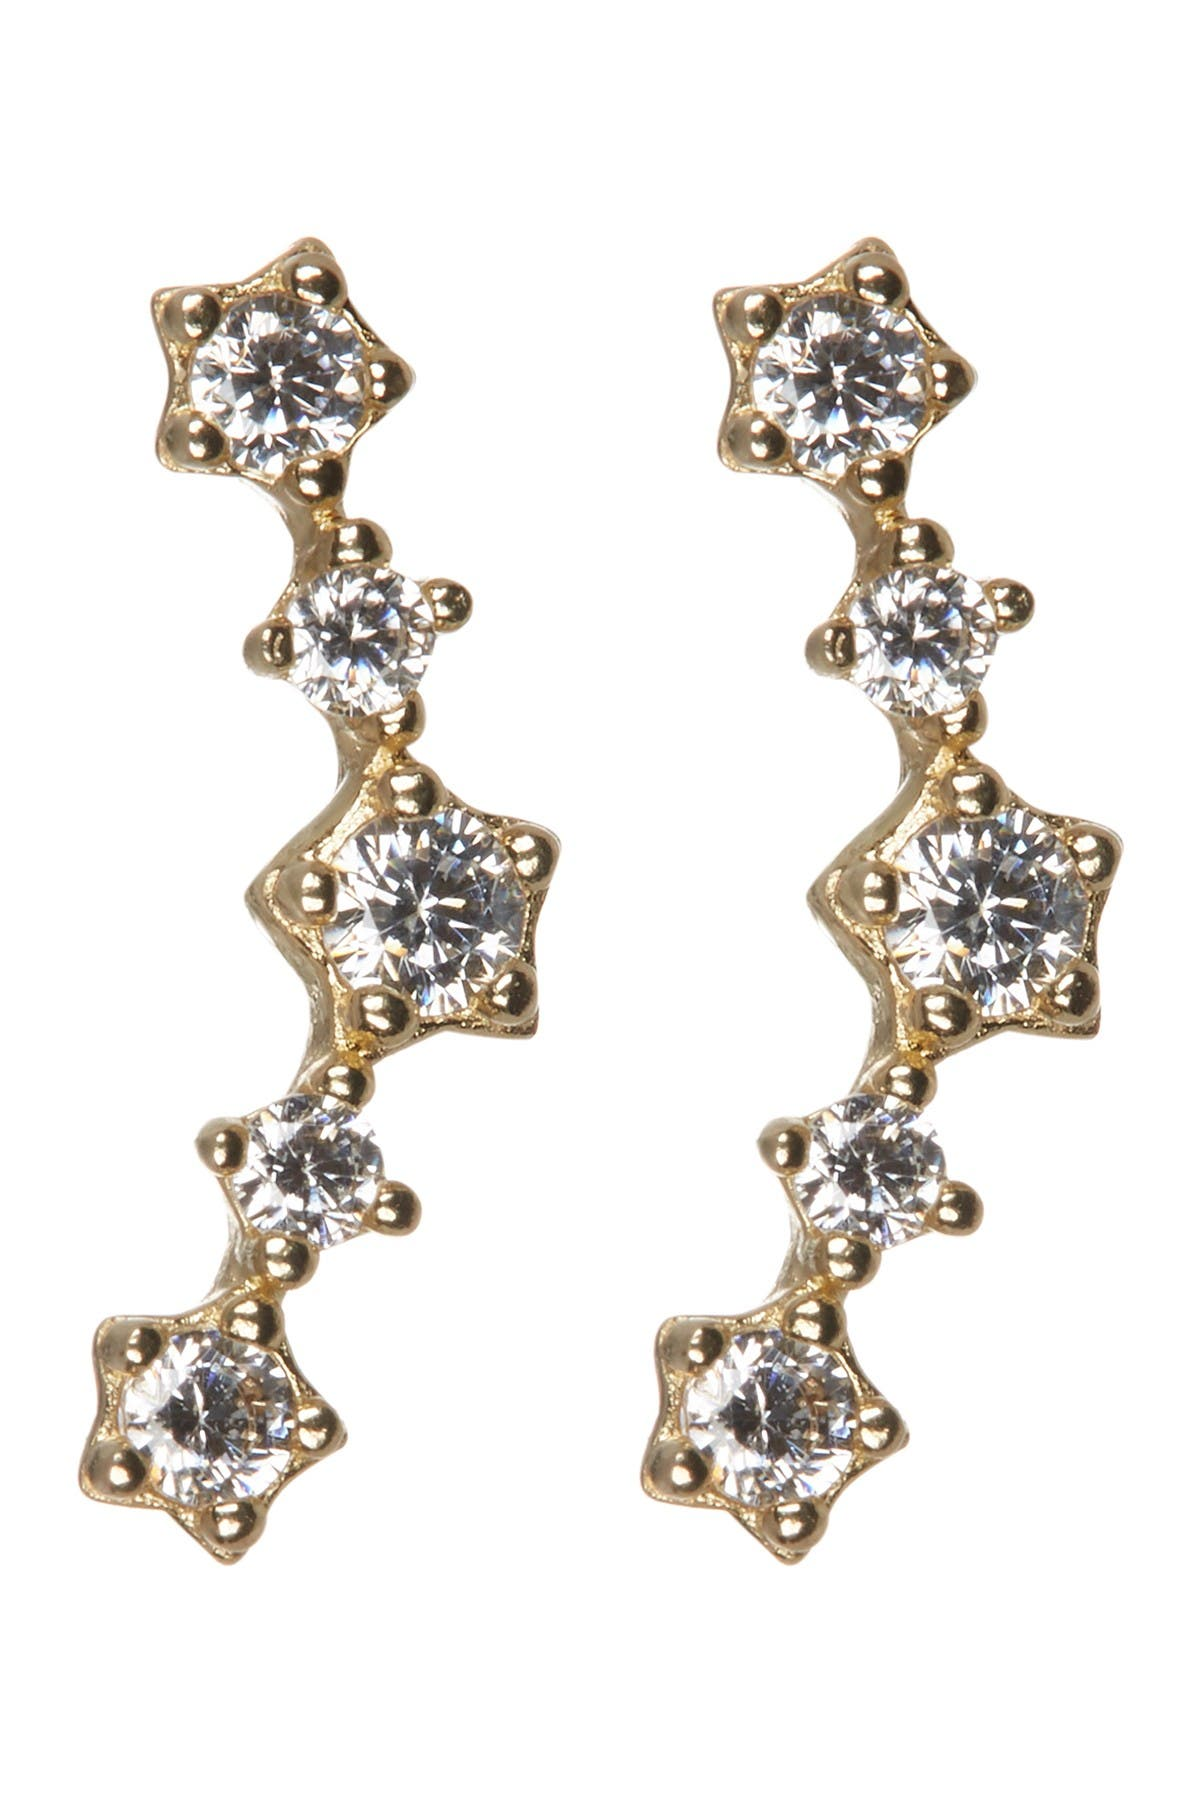 Image of Candela 14K Yellow Gold CZ Constellation Stud Earrings